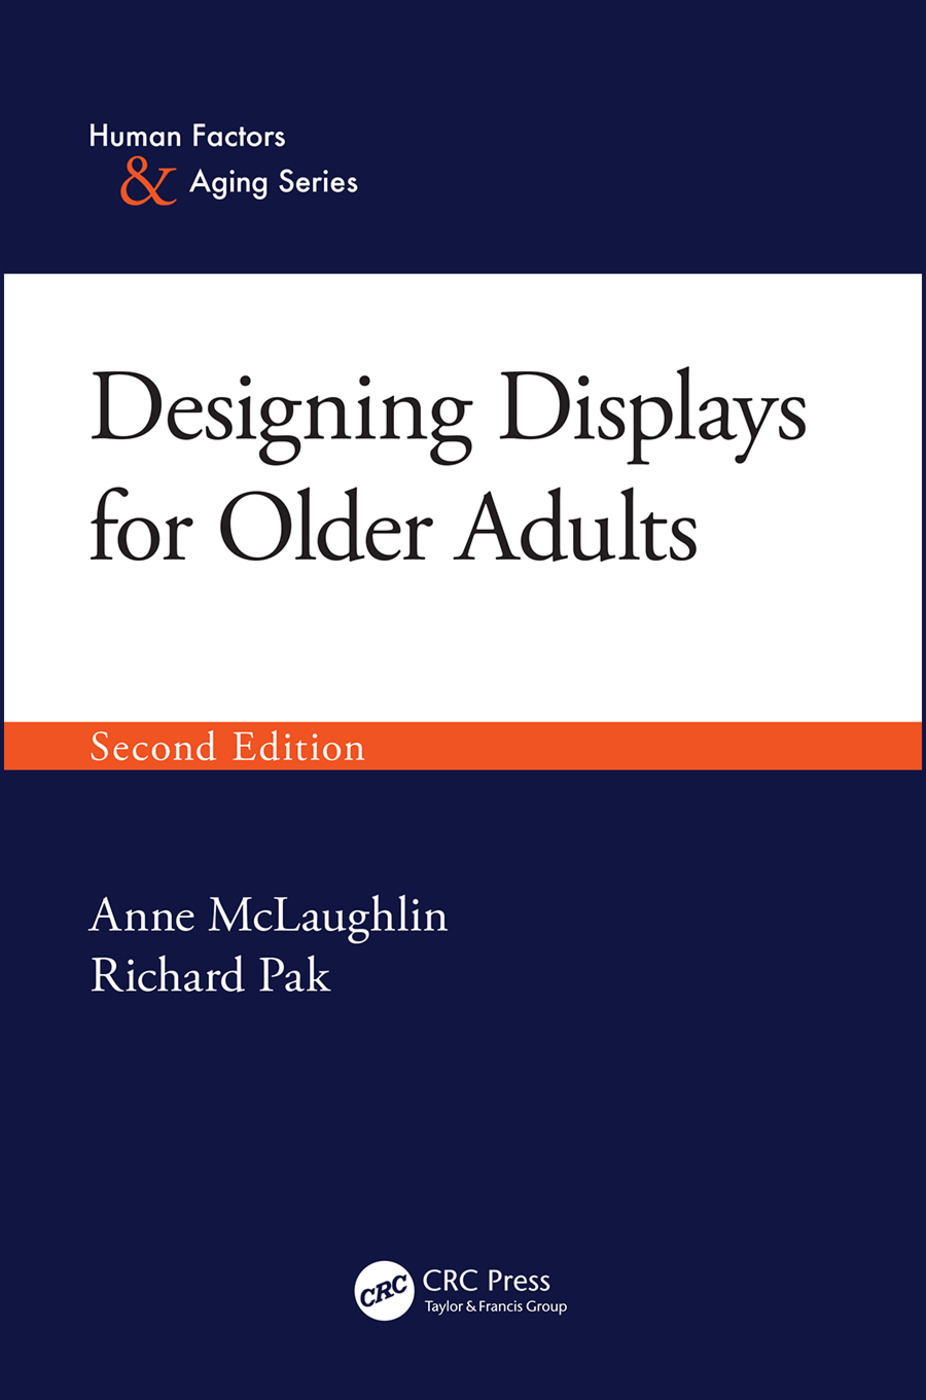 Designing Displays for Older Adults, Second Edition book cover